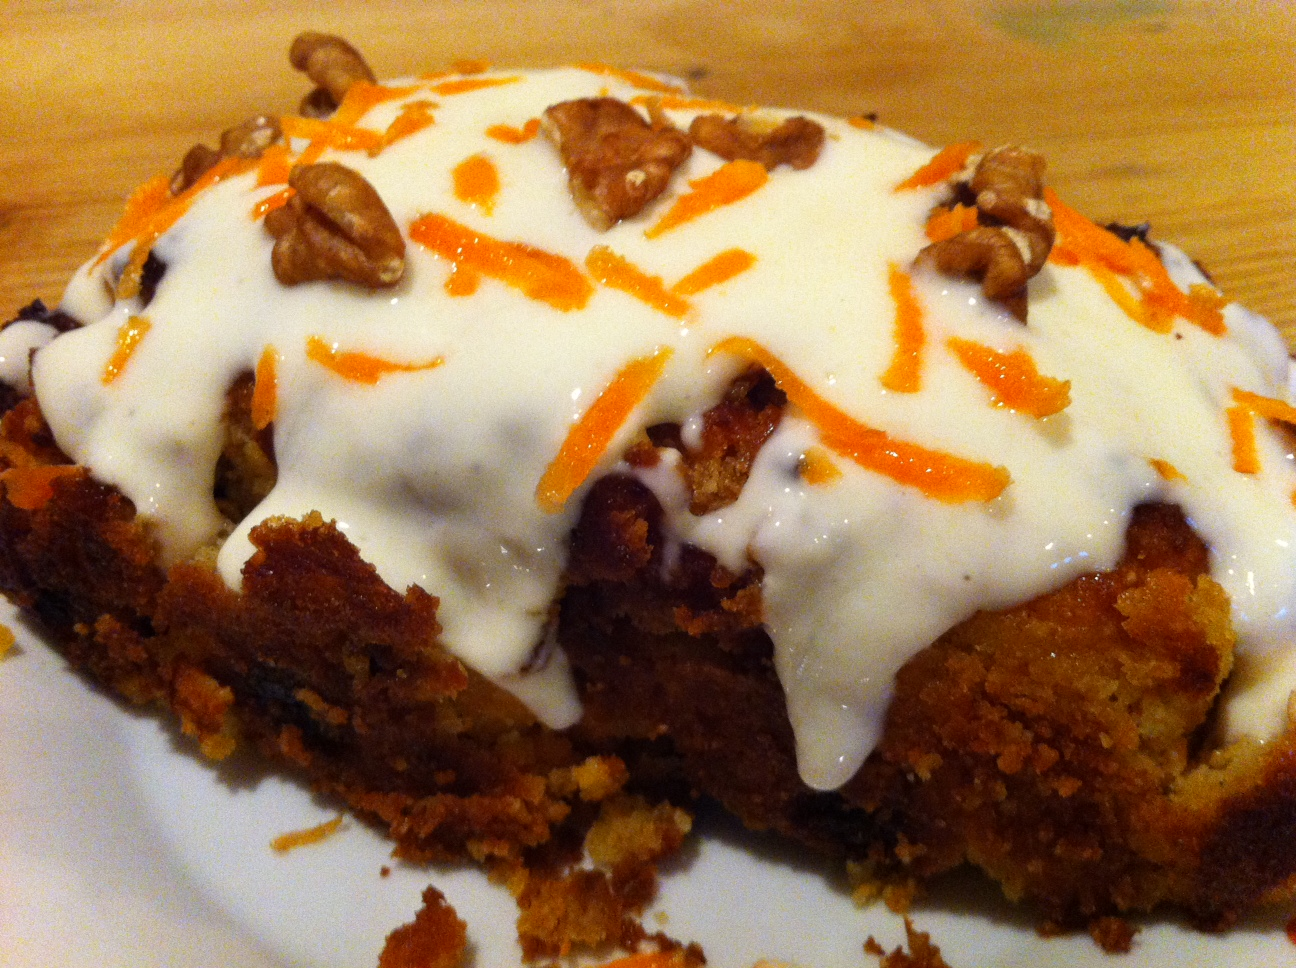 Carrot Cake Recipe Uk Healthy: Easy Peasy Very Healthy Very Tasty Carrot And Sweet Potato